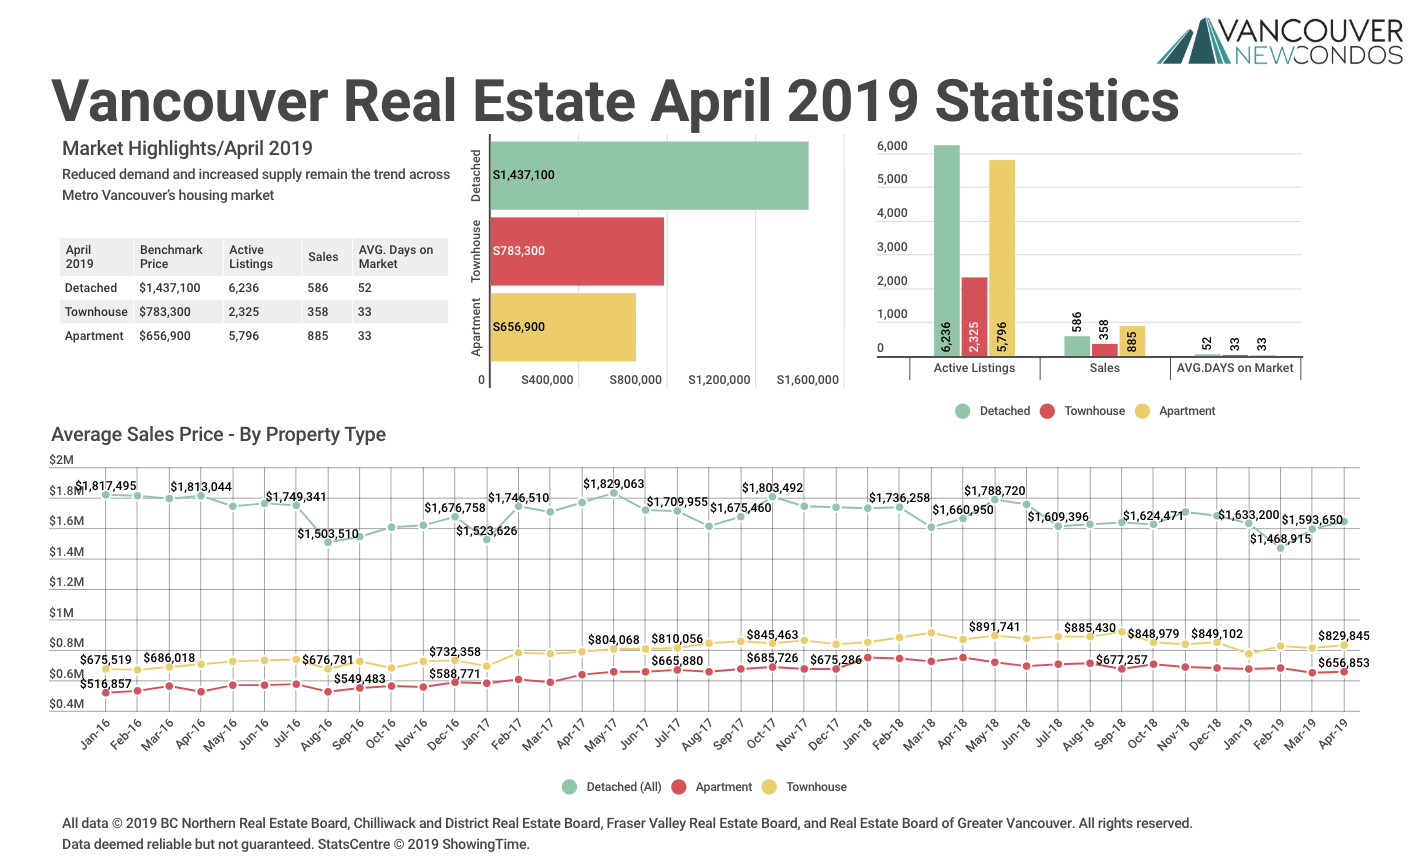 VNC Vancouver Real Estate April 2019 Statistics